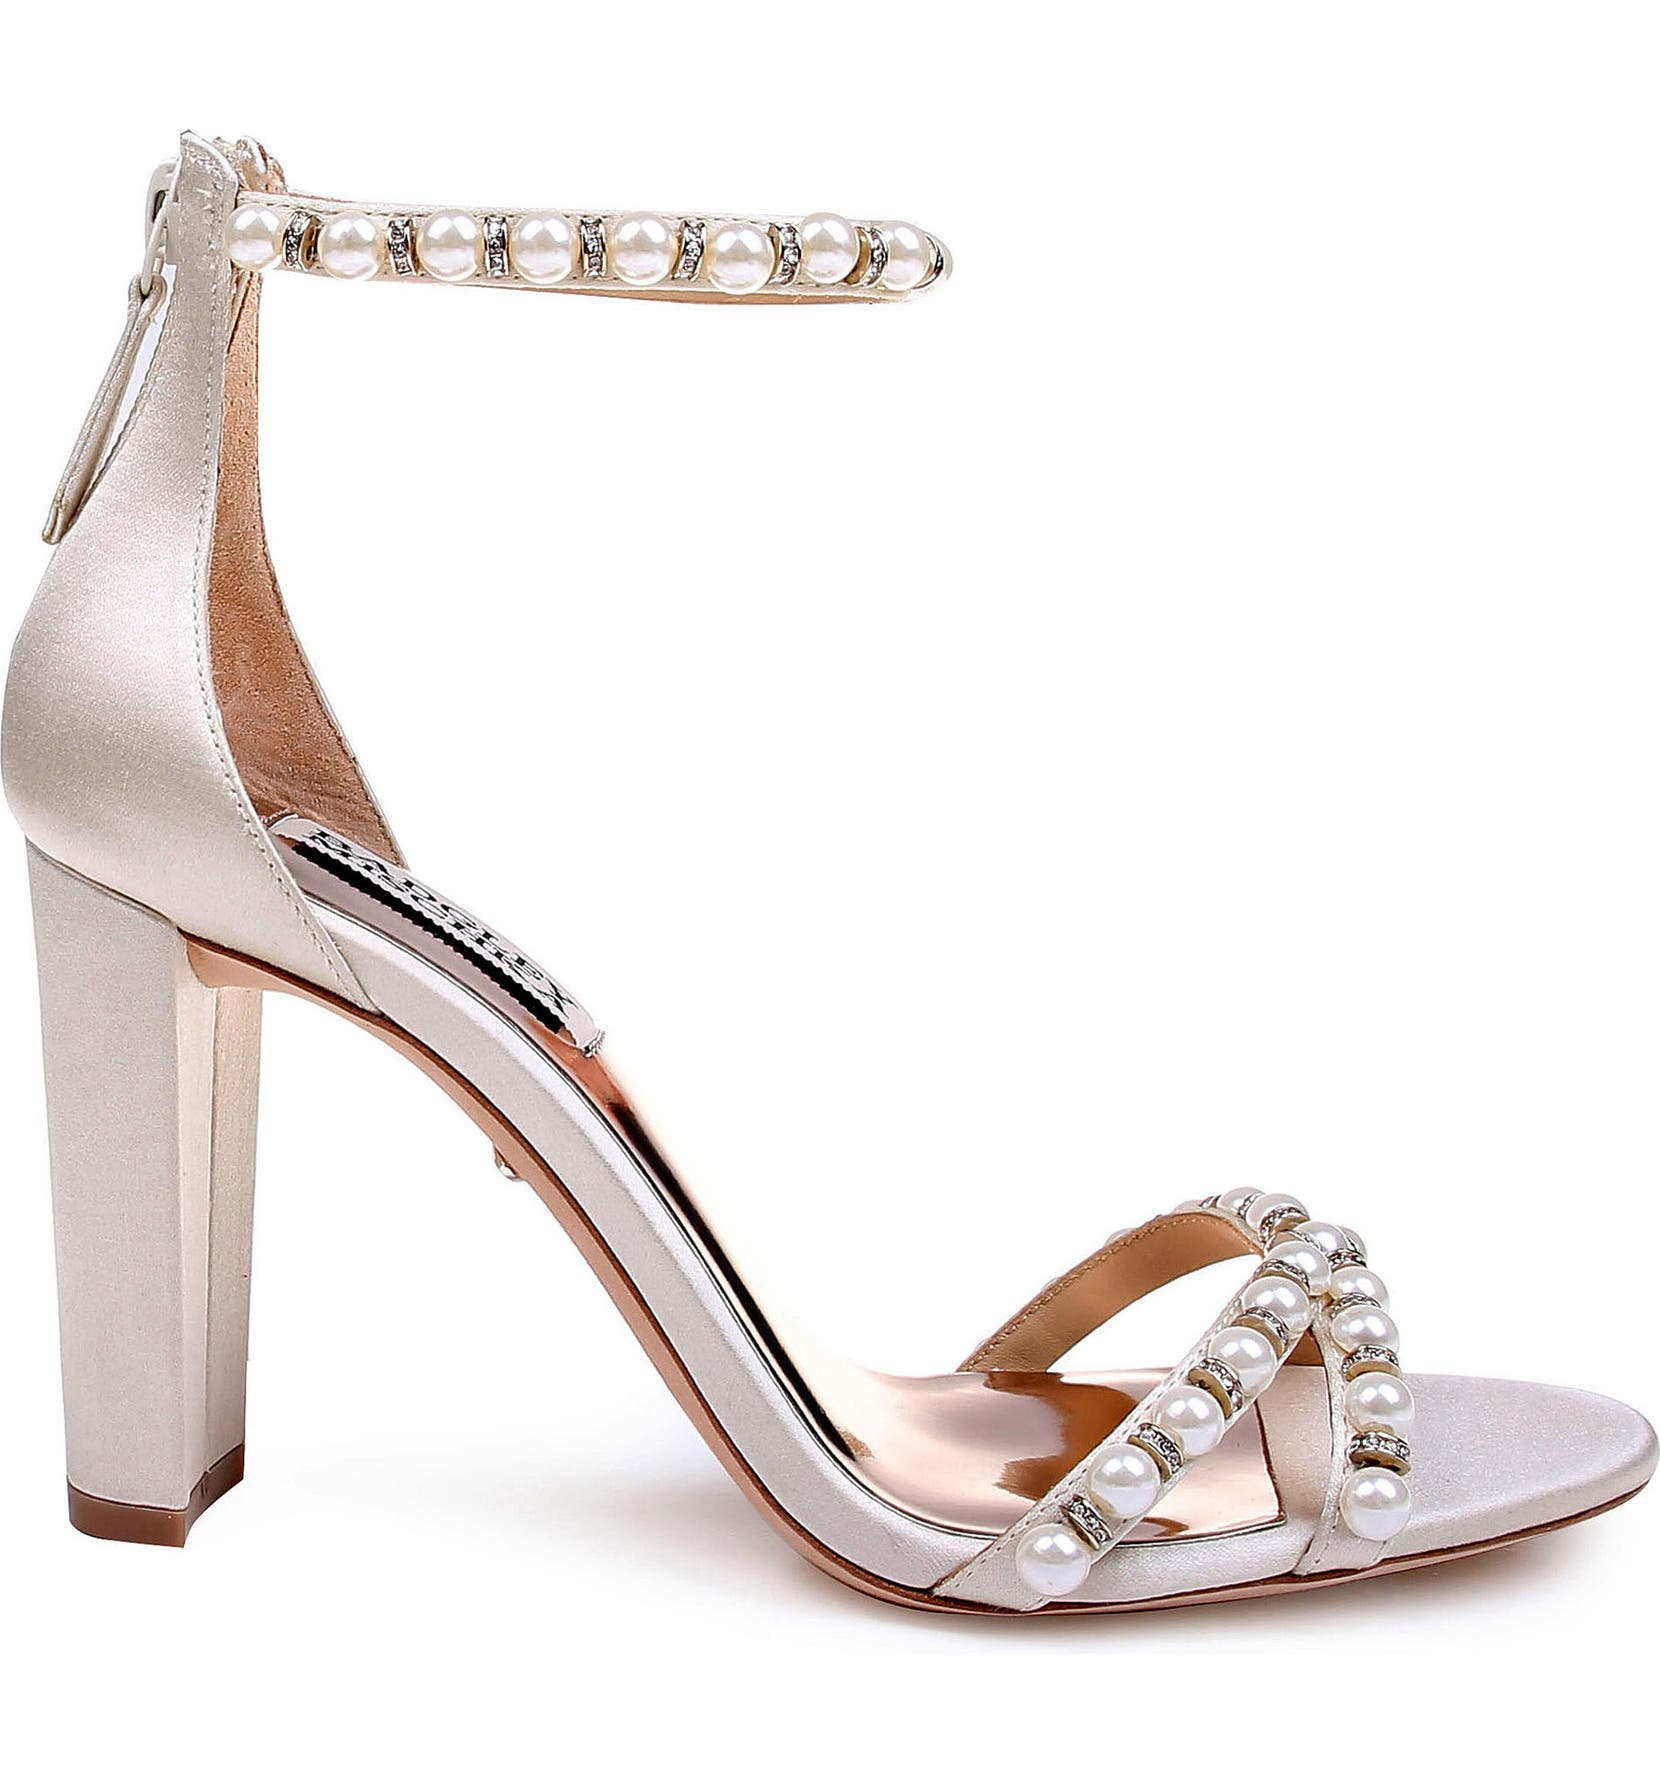 871d9808a7e Badgley Mischka Hooper Ankle Strap Sandal (Women)